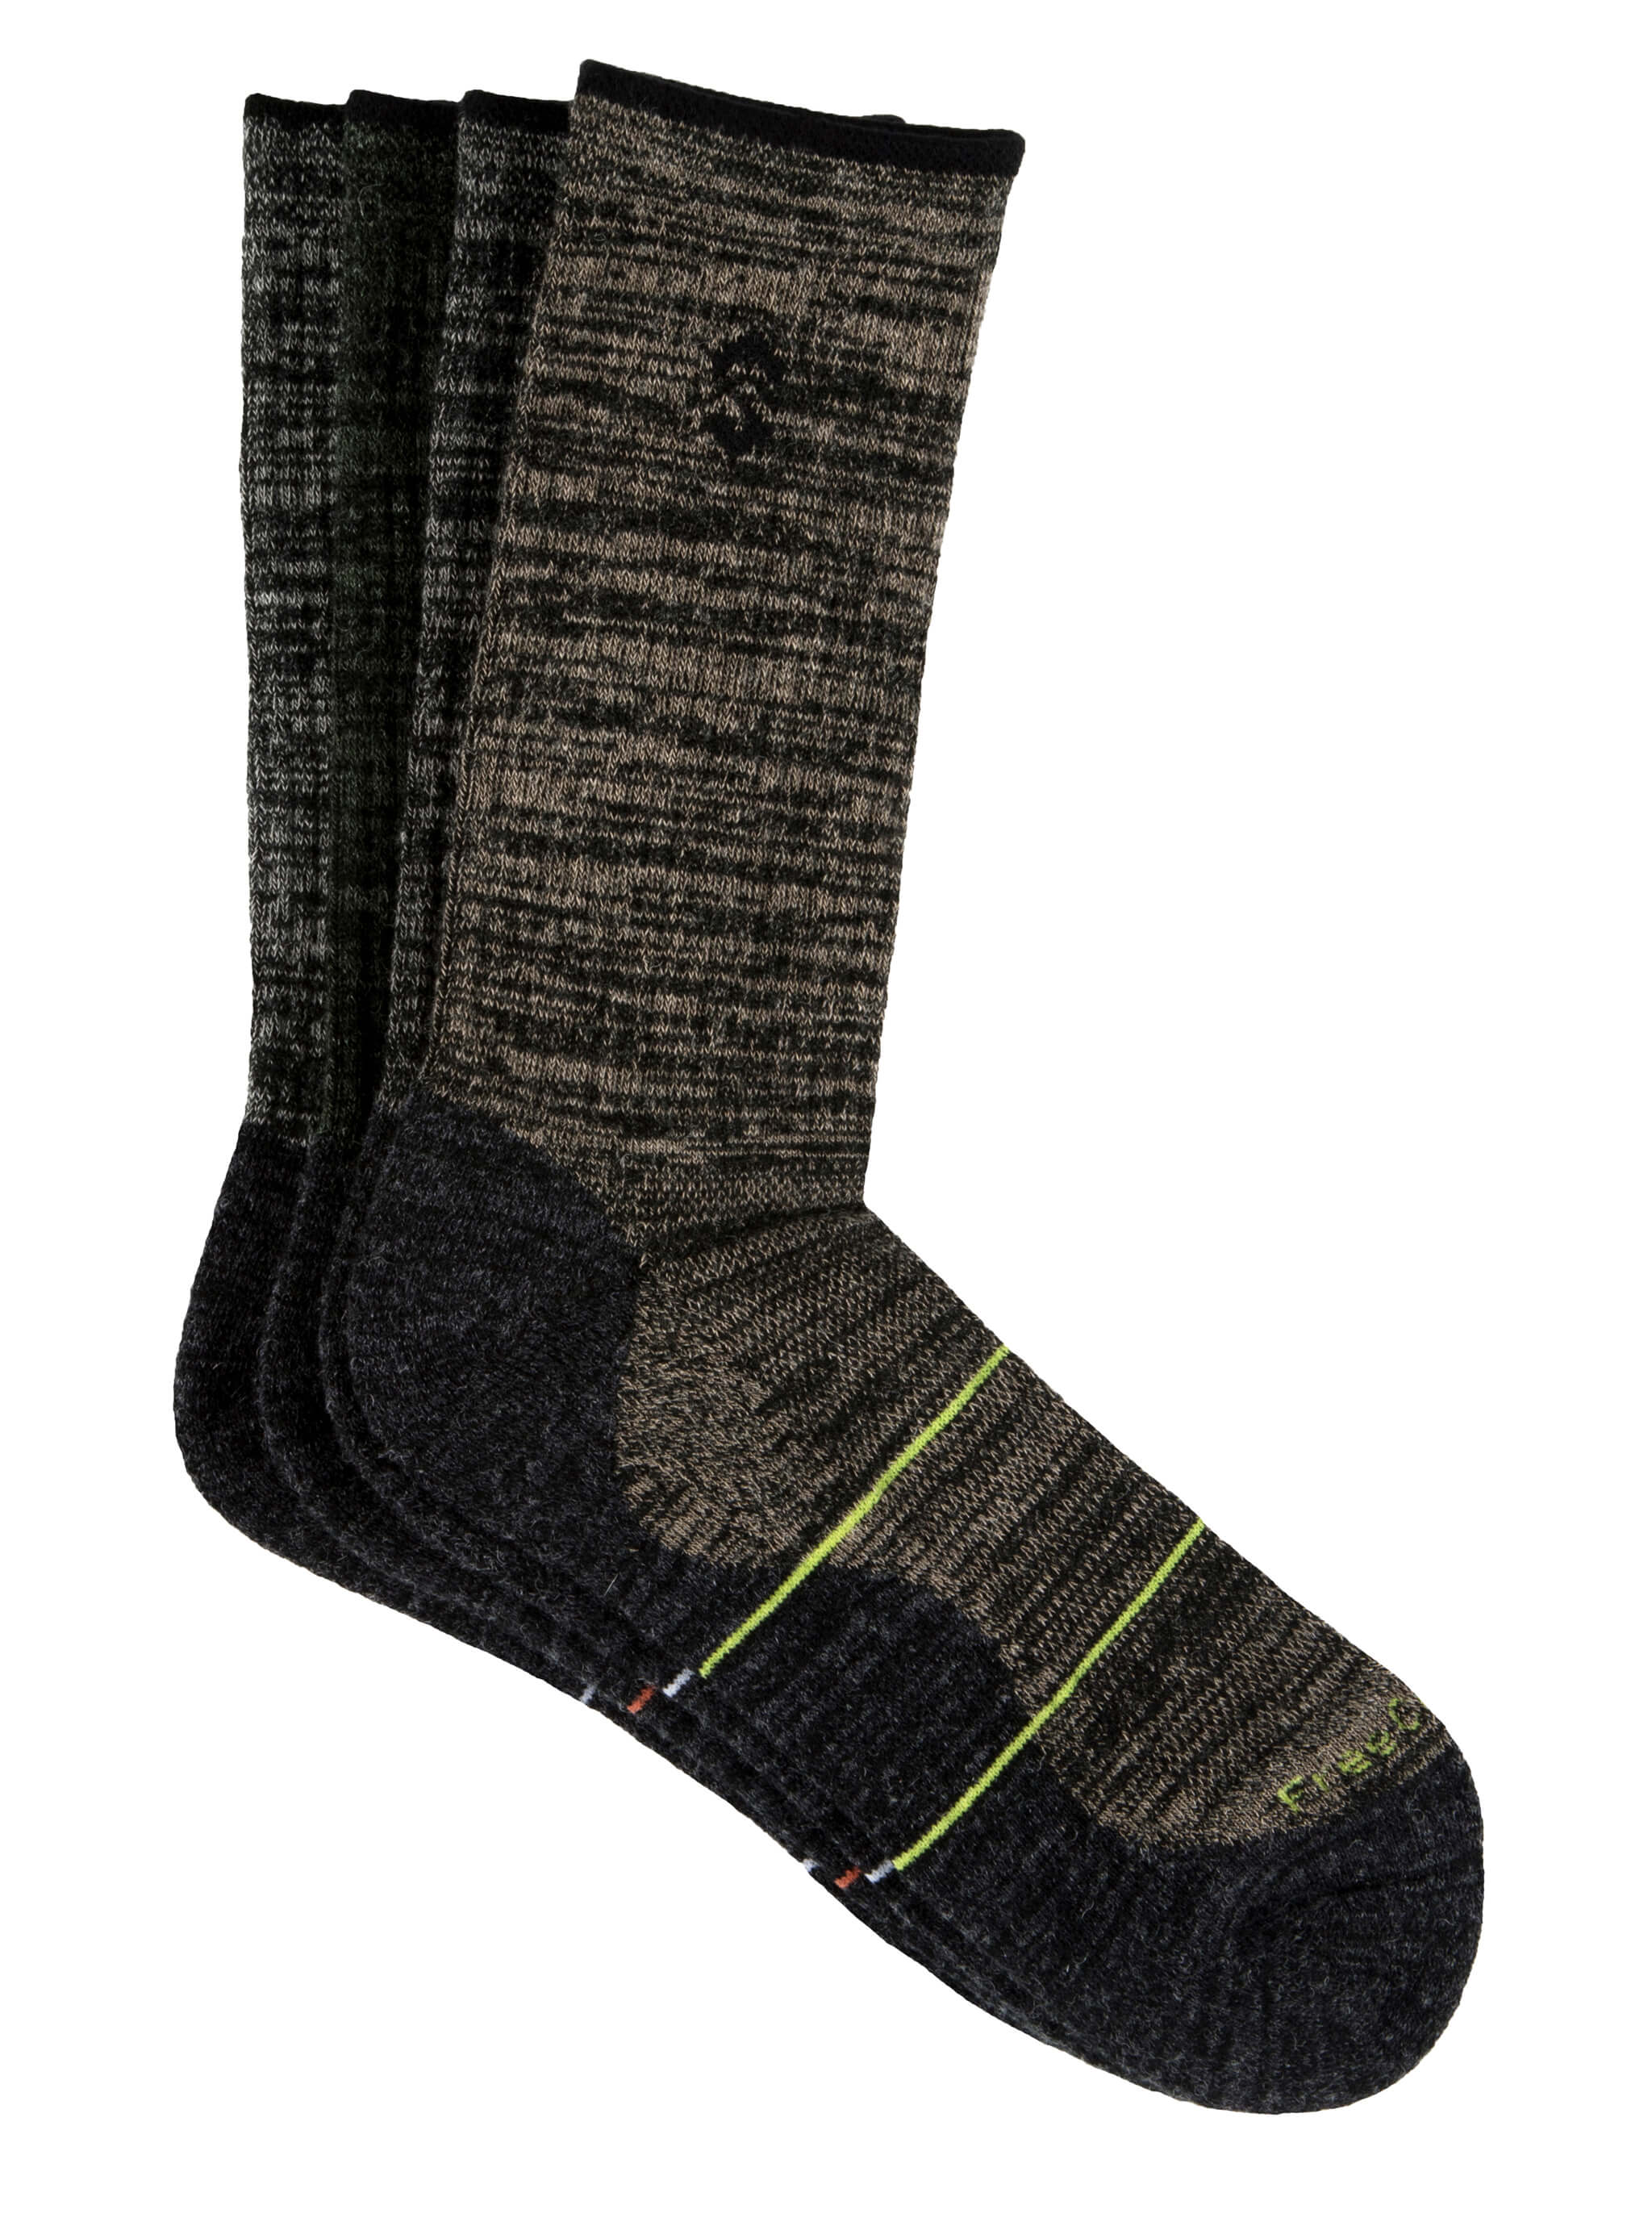 Men's Wool-Blend Black Marl Crew Socks